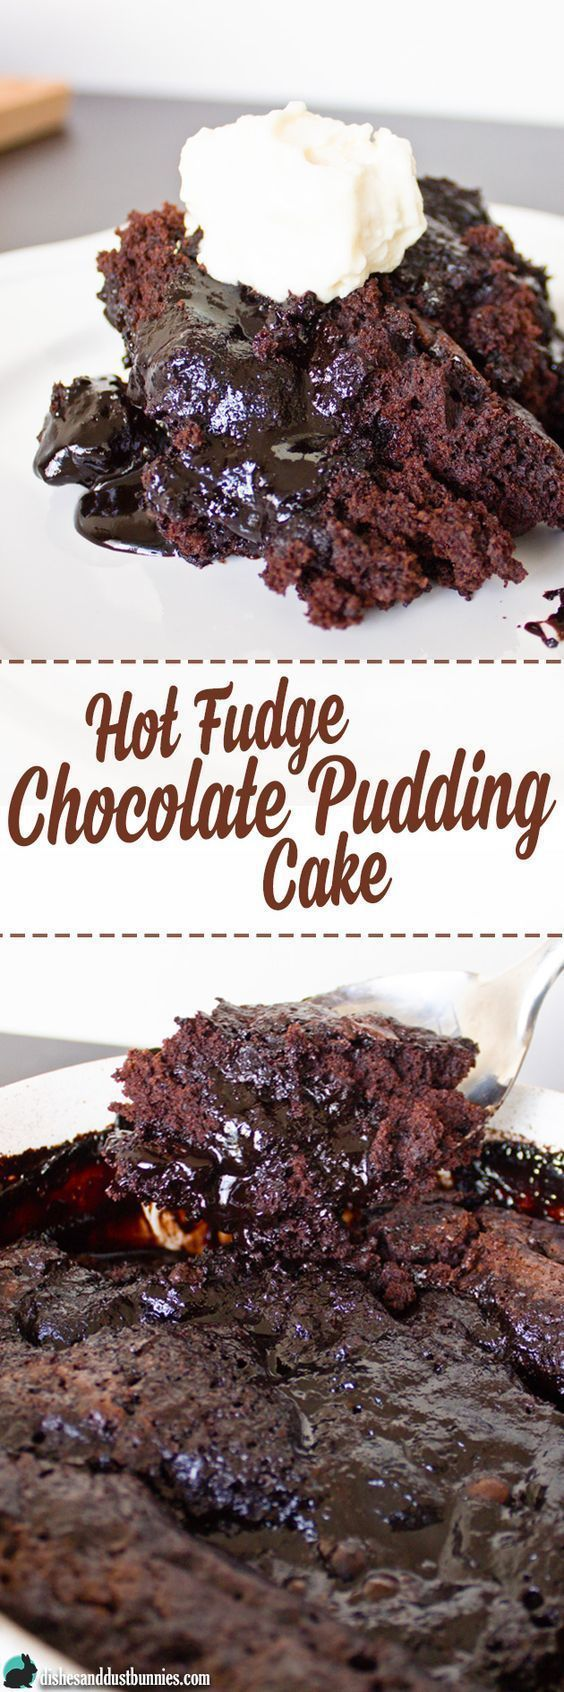 Hot Fudge Chocolate Pudding Cake from dishesanddustbunnies.com